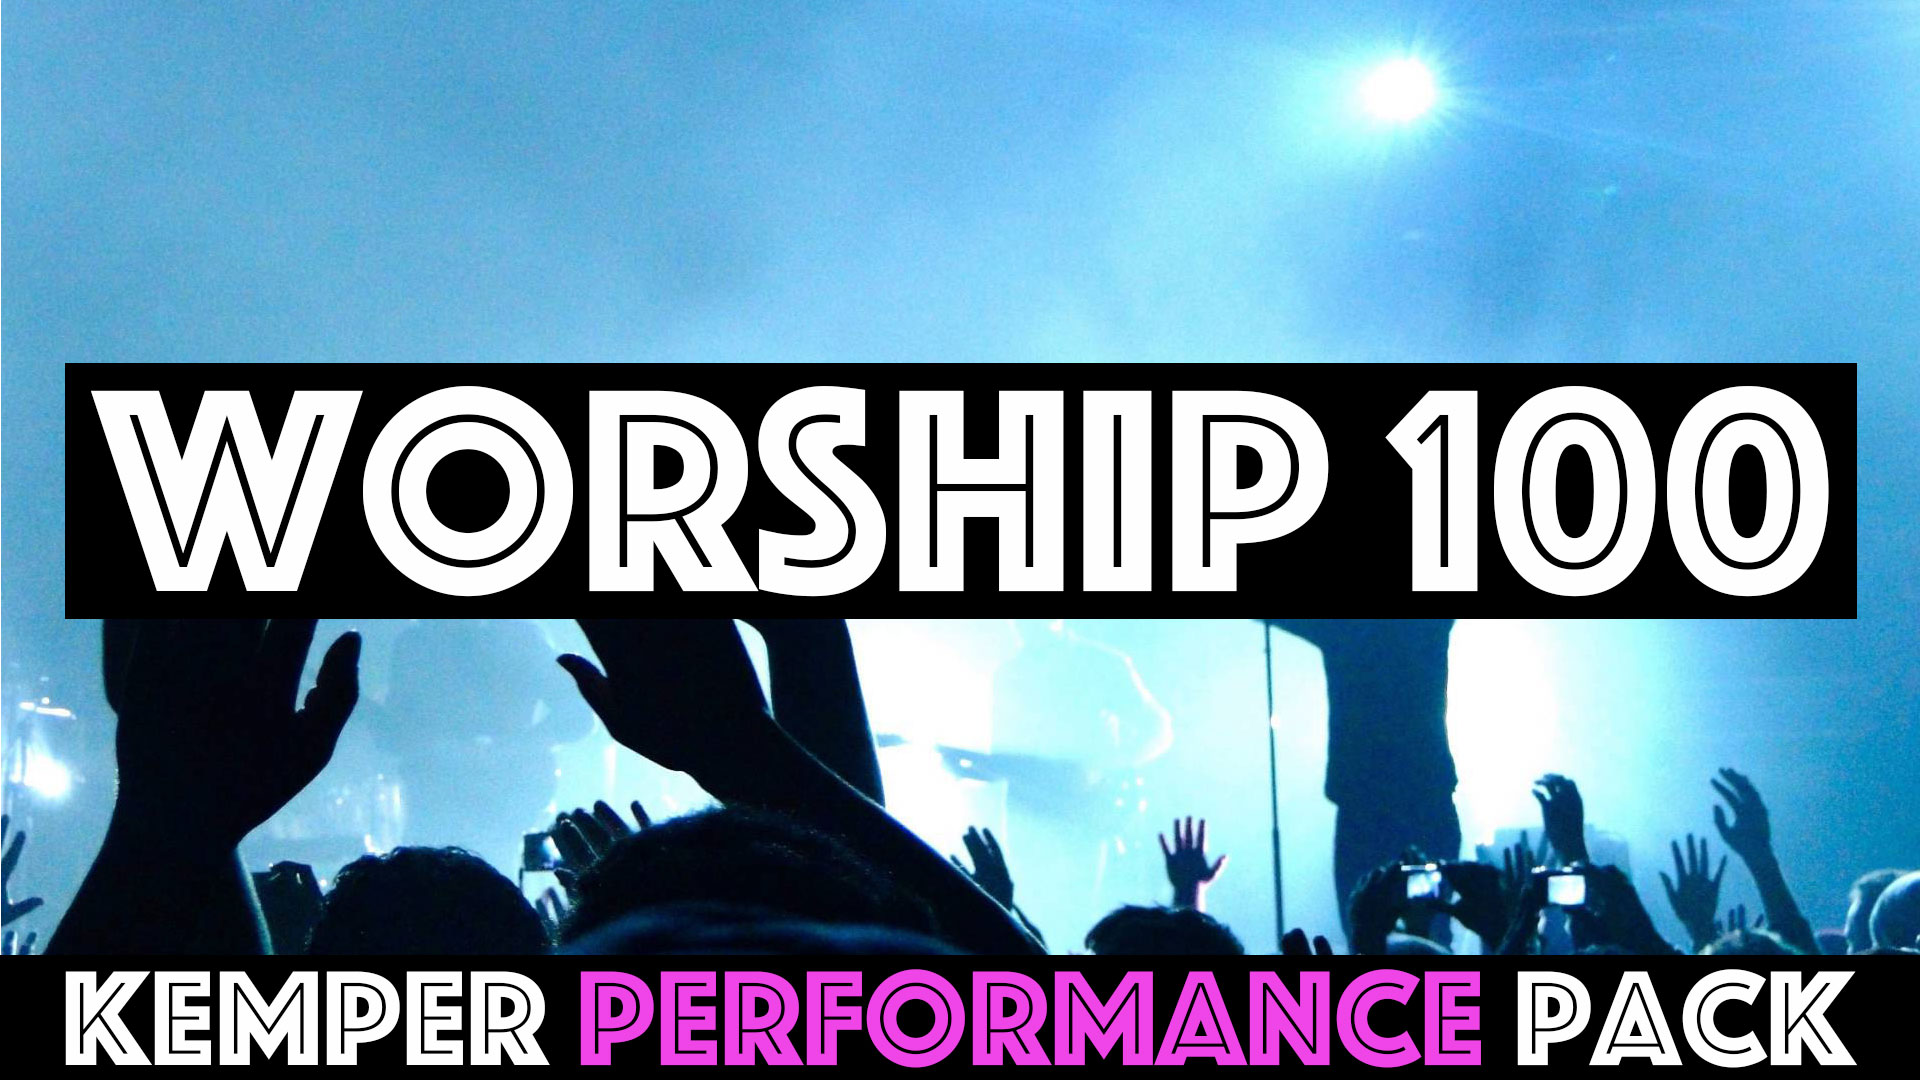 Worship 100 Pack!! - Limited Time Offer!! 50% Off code inside!!!The Tone Junkie Worship 100 Performance Pass entitles you to all 100 popular worship performances for the Kemper as part of the Worship 100 Pack. Bundle #1 is available now and is included with this purchase but in addition you will also receive the remaining 75 worship performances for the Kemper as they are released over the next few months.